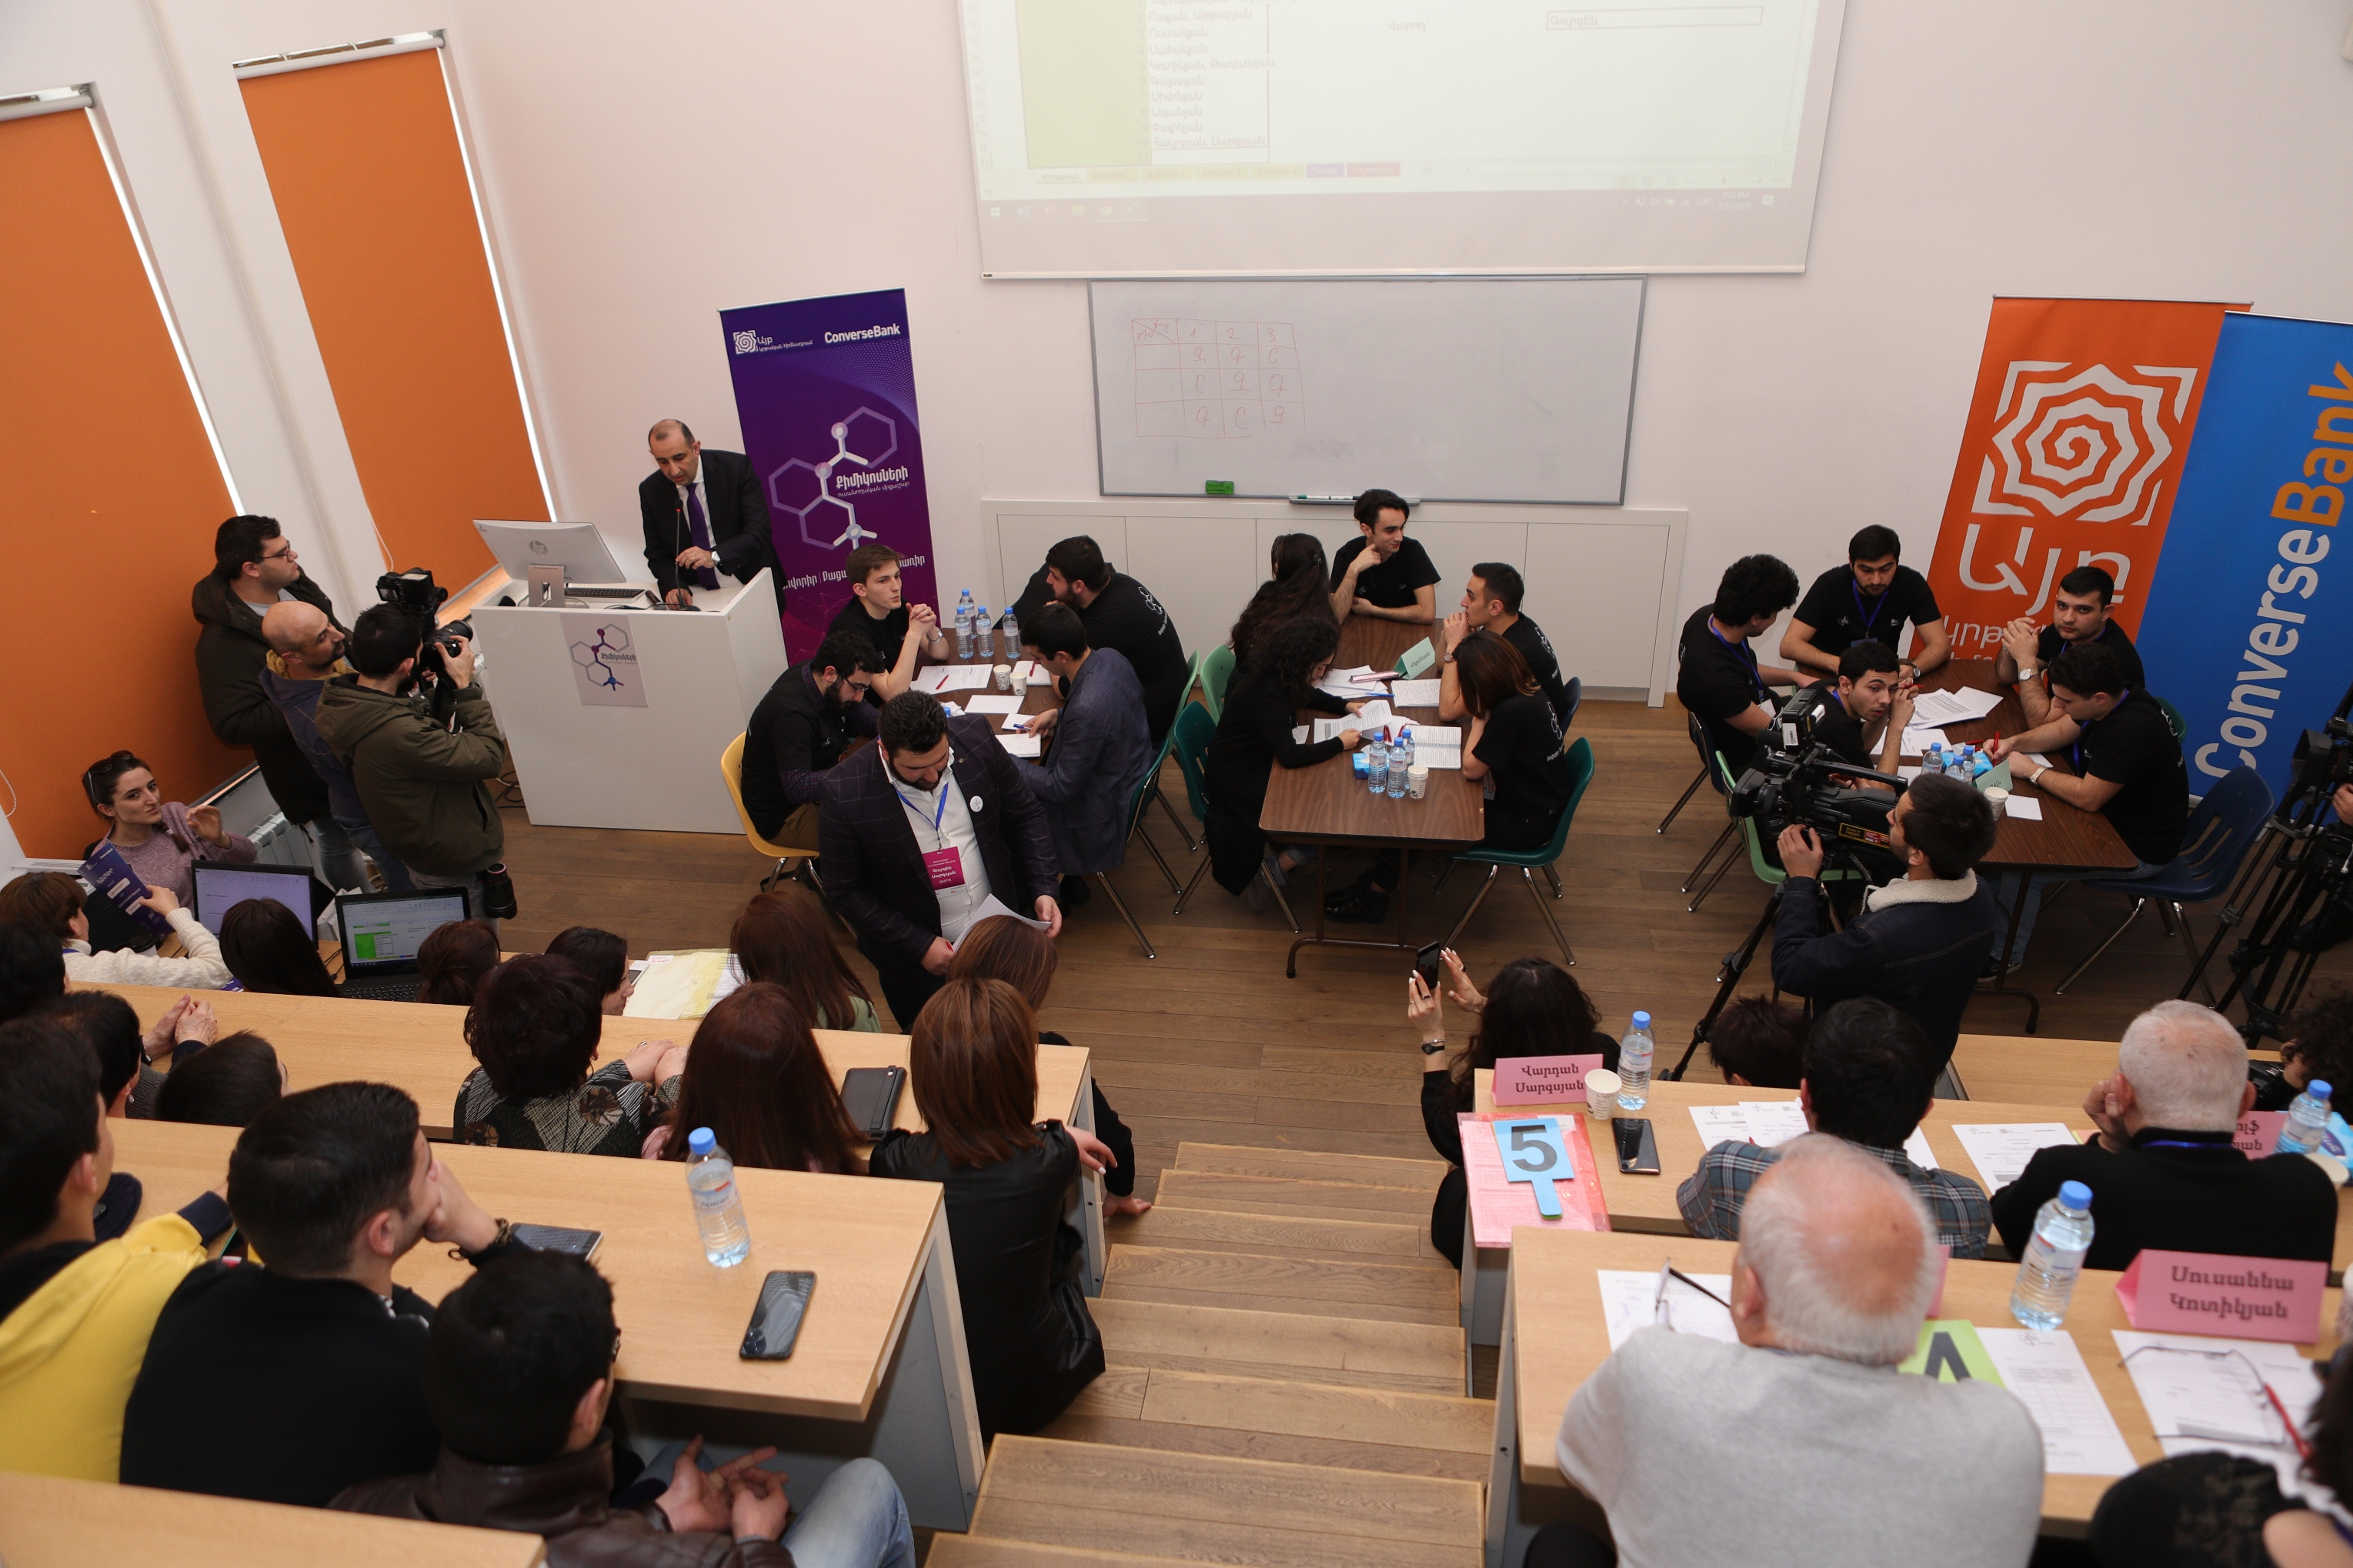 Converse Bank supported the first student chemists' tournament